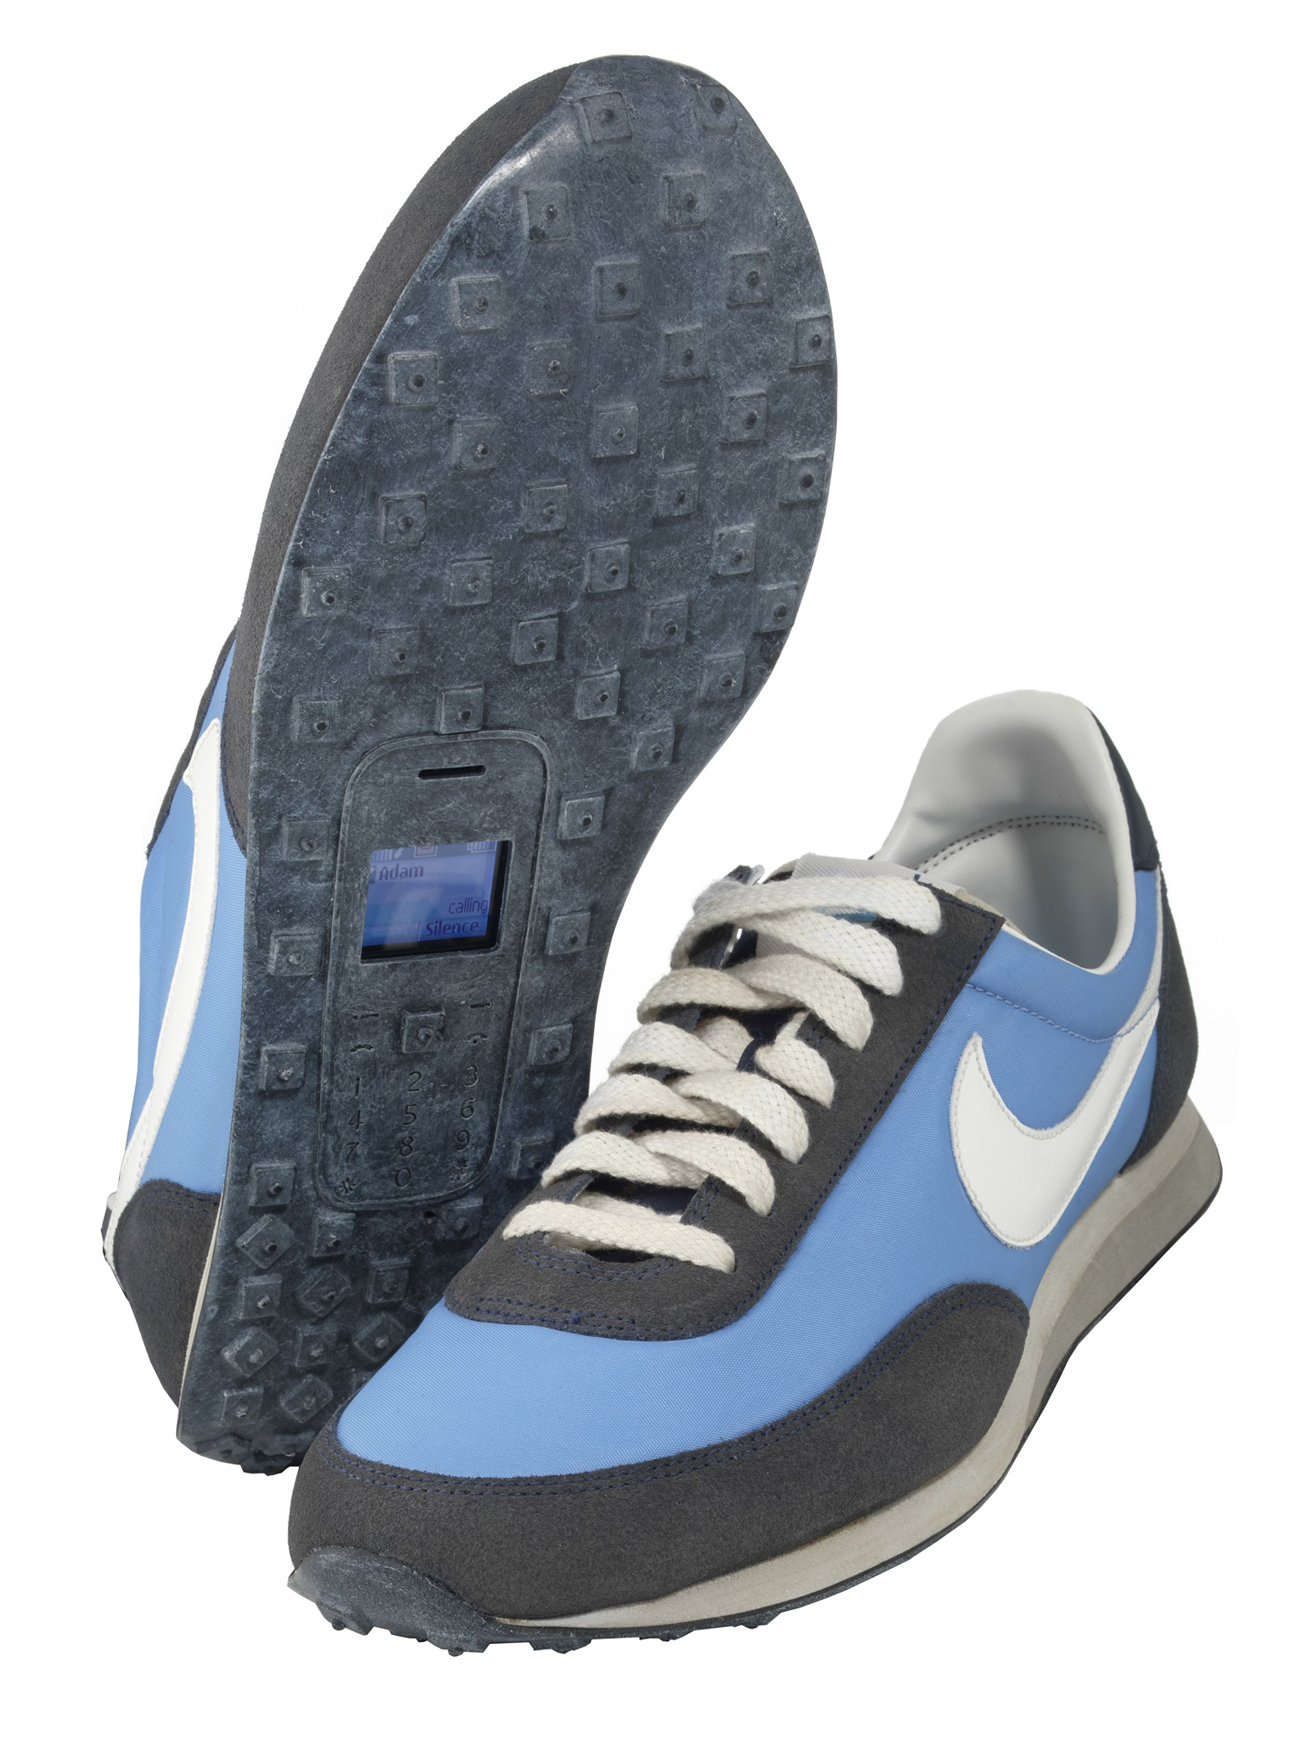 Nike Air phone for fast dialing